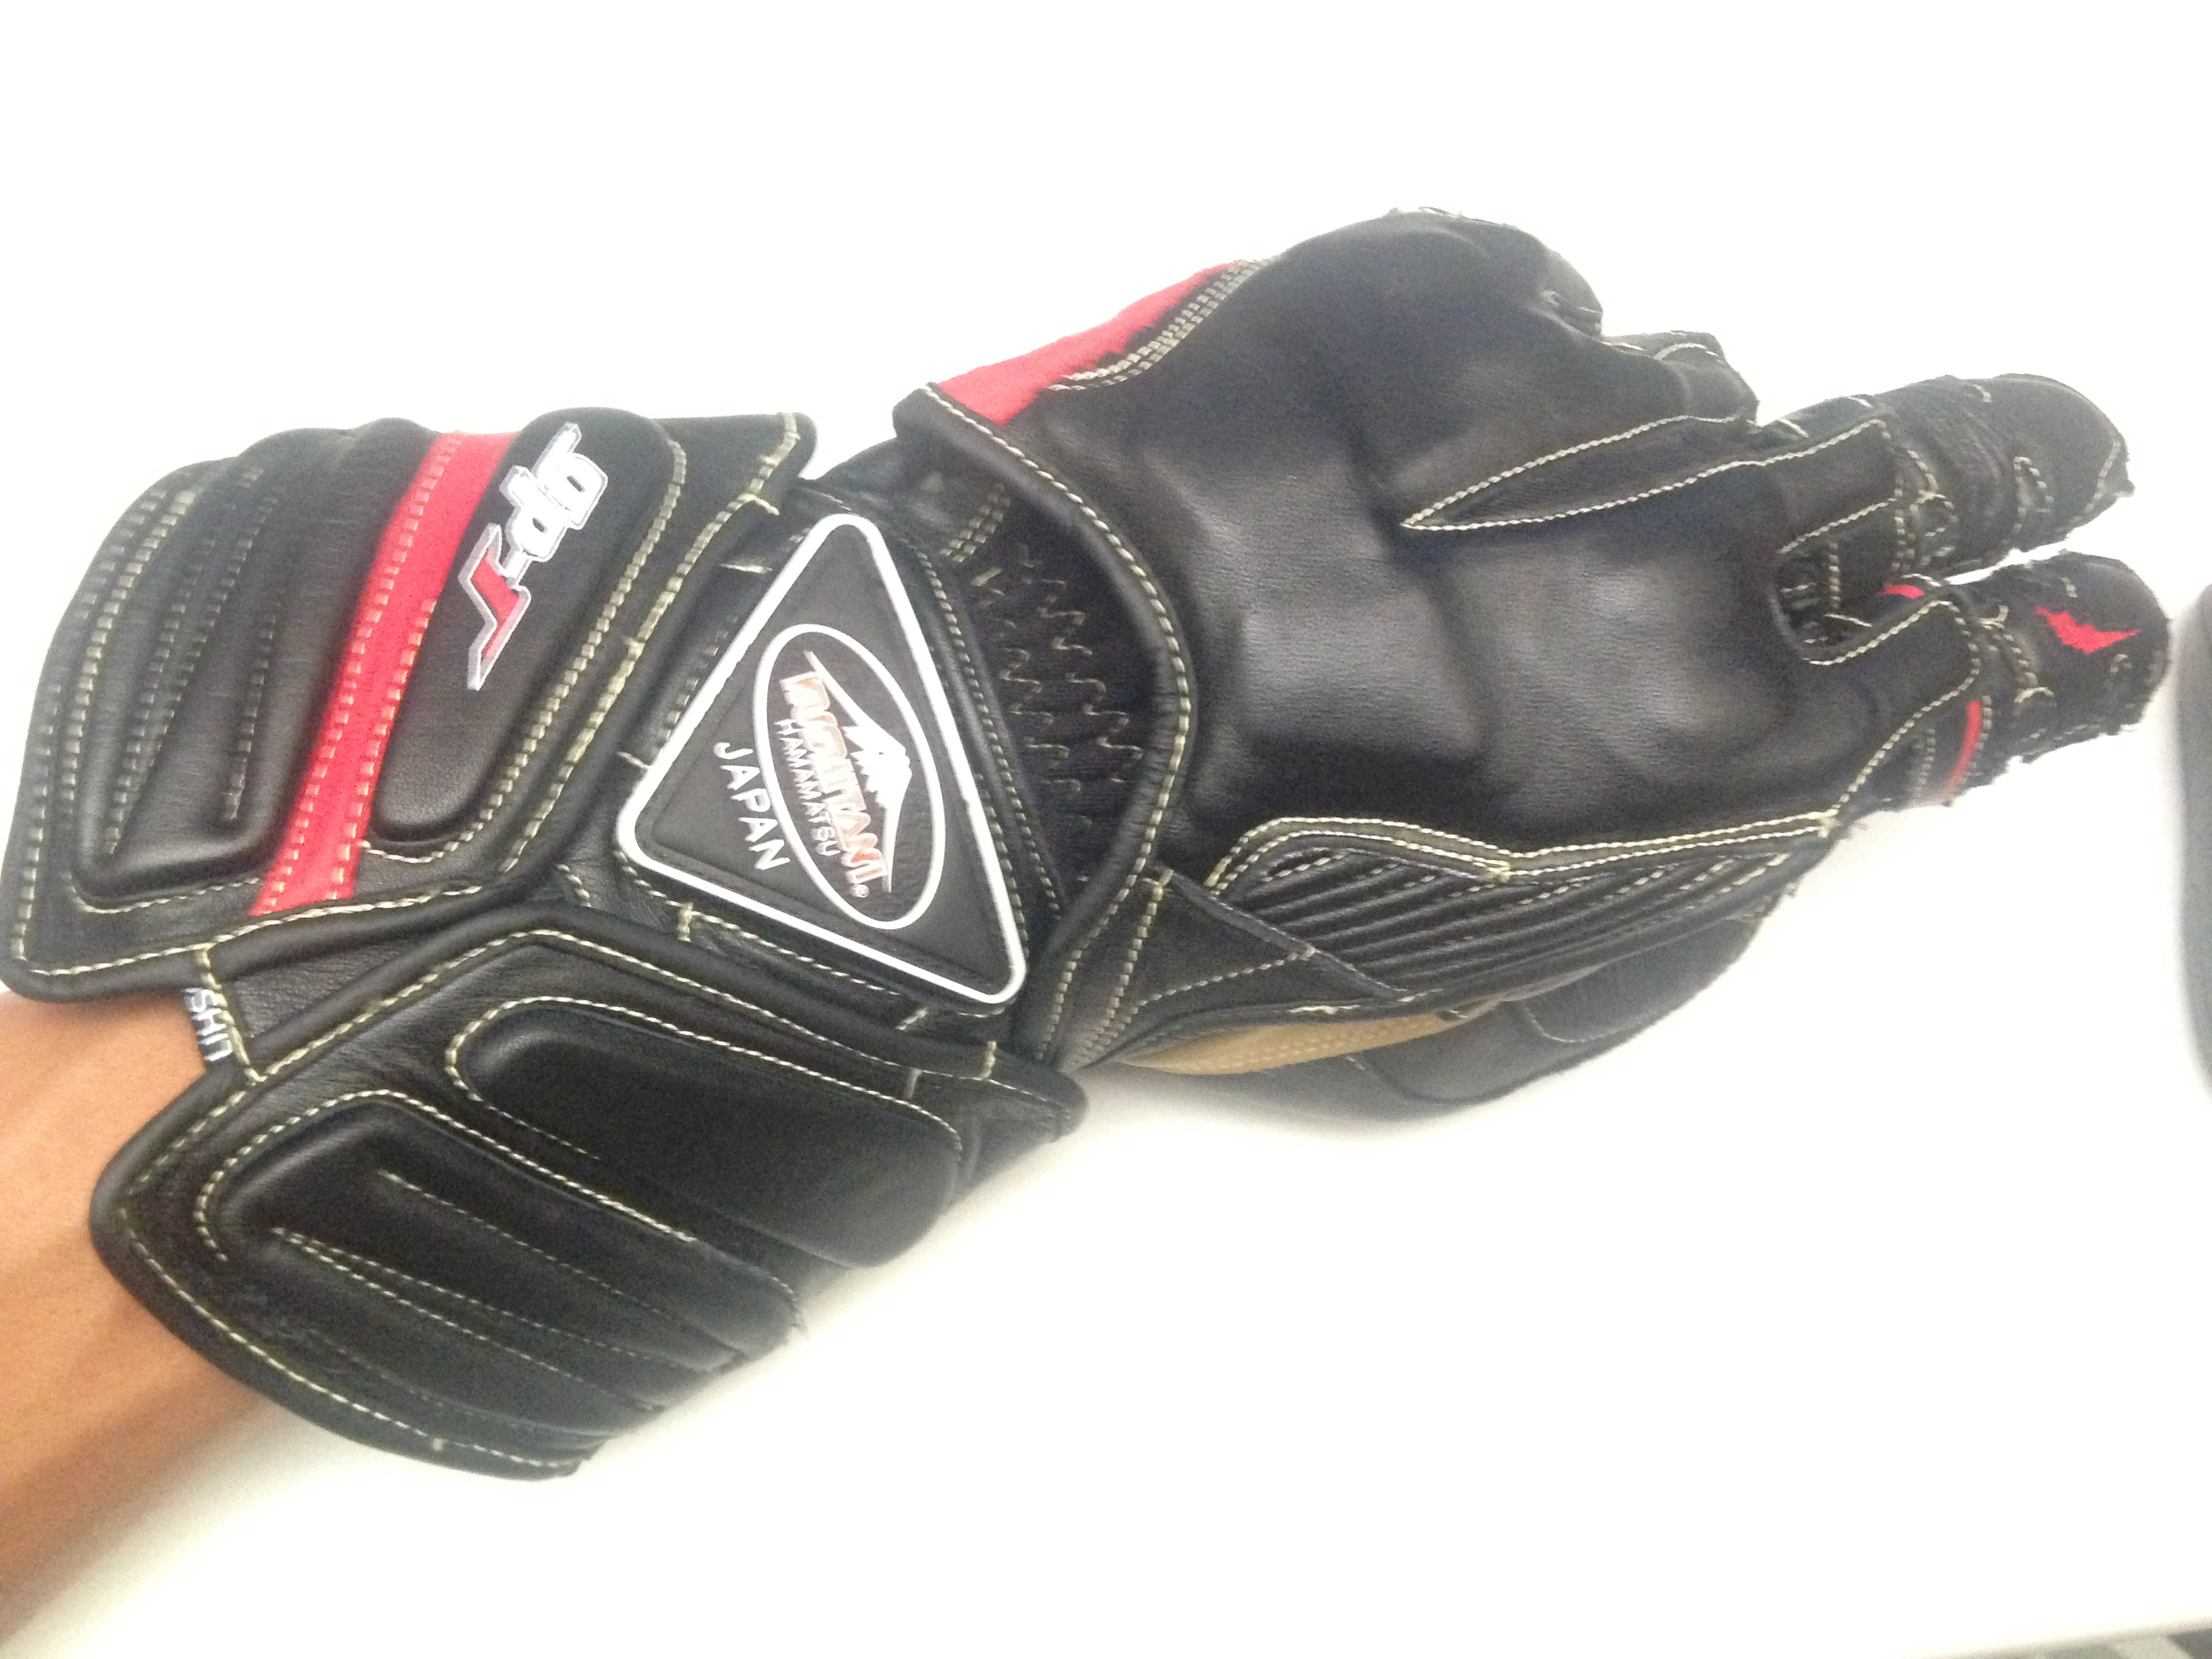 Japanese leather motorcycle gloves - Gloves Top